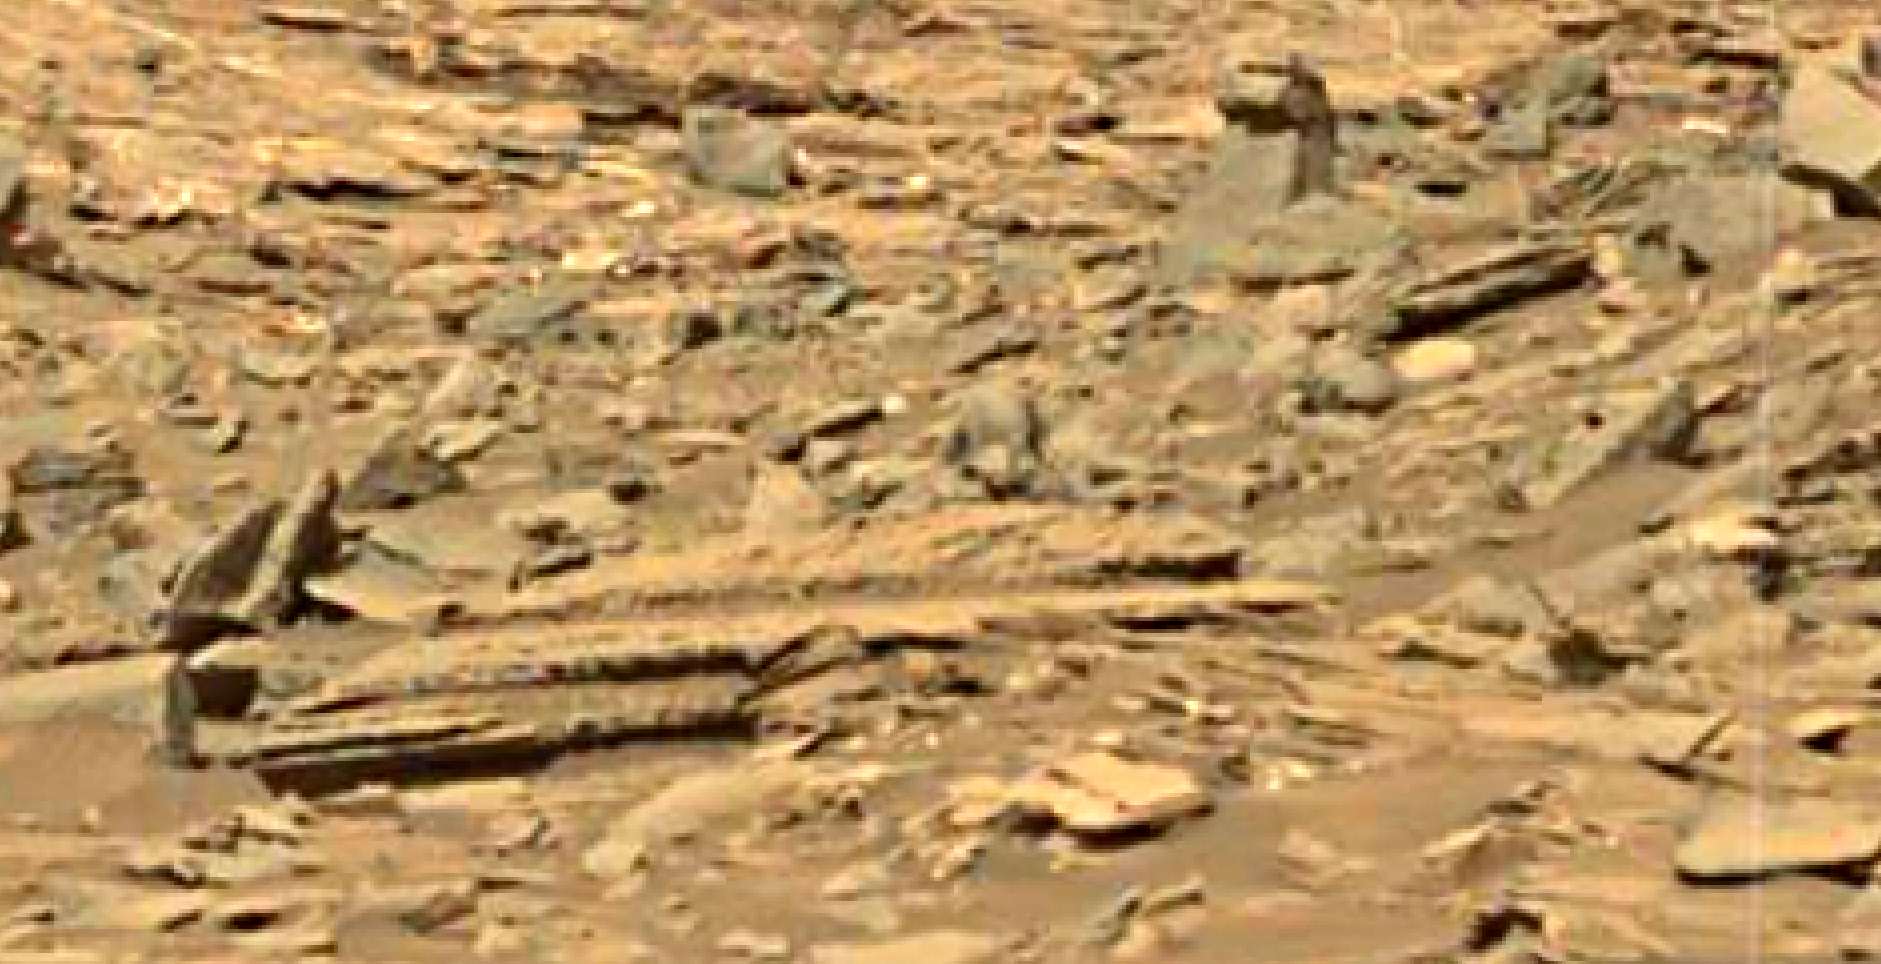 mars-sol-1451-anomaly-artifacts-5-was-life-on-mars